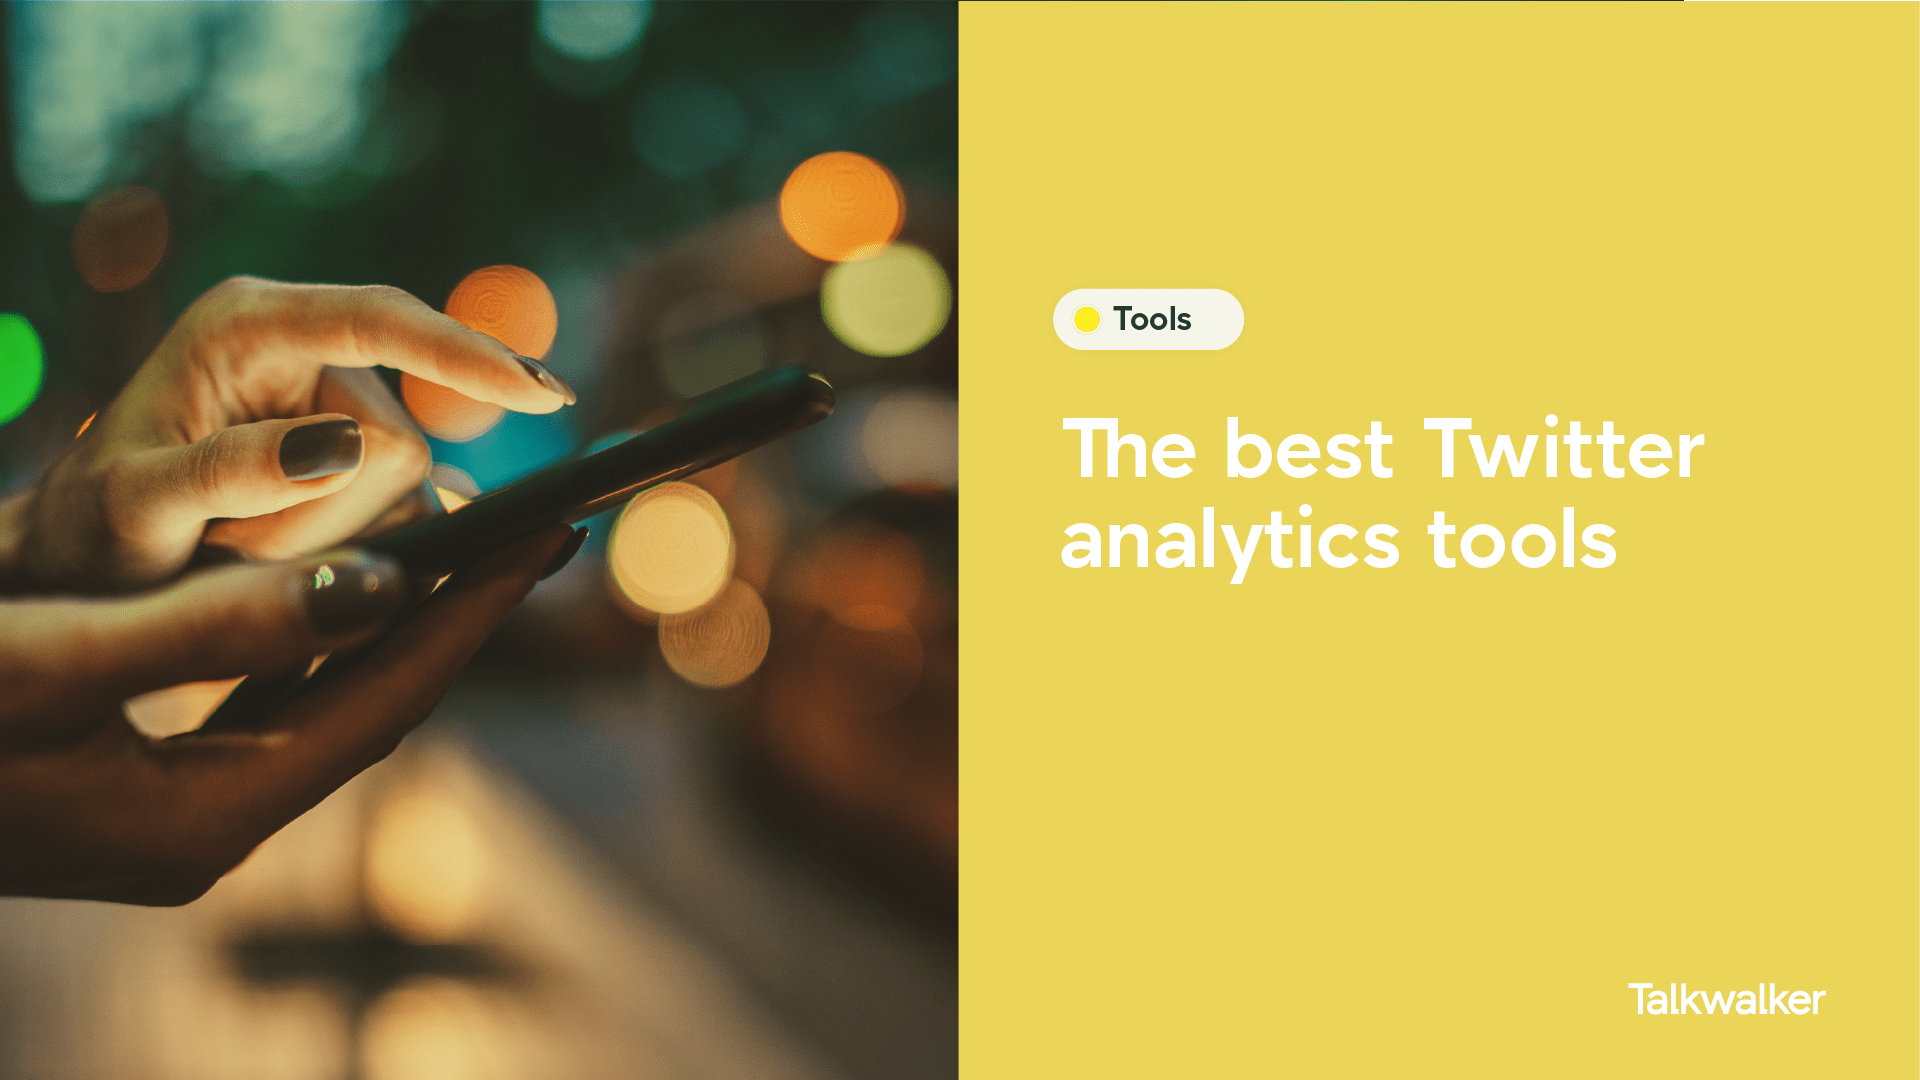 Free Twitter analytics tools - with views from experts - Hand using a smartphone